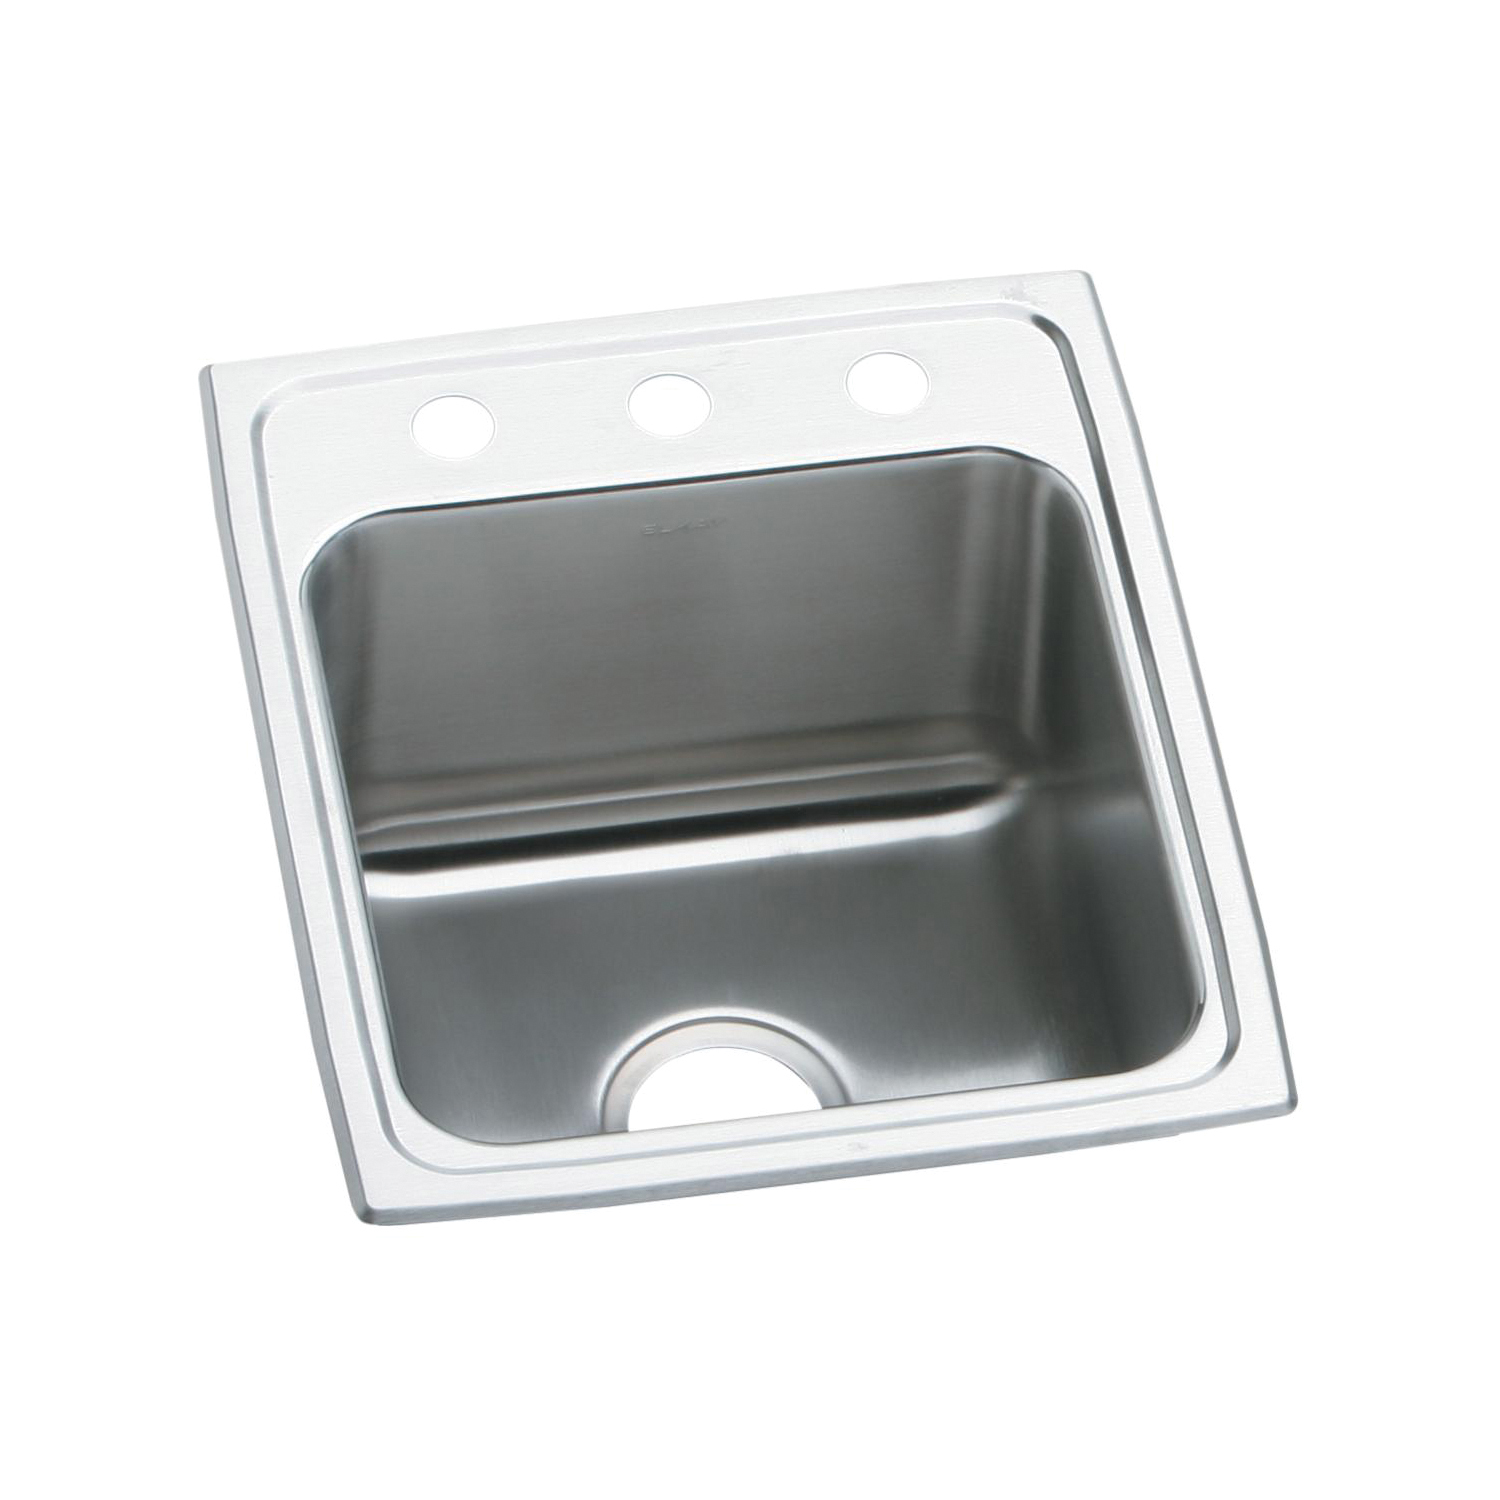 Elkay® DLR1722103 Gourmet Kitchen Sink, Rectangular, 3 Faucet Holes, 17 in W x 22 in D x 10-1/8 in H, Top Mount, Stainless Steel, Lustertone, Domestic